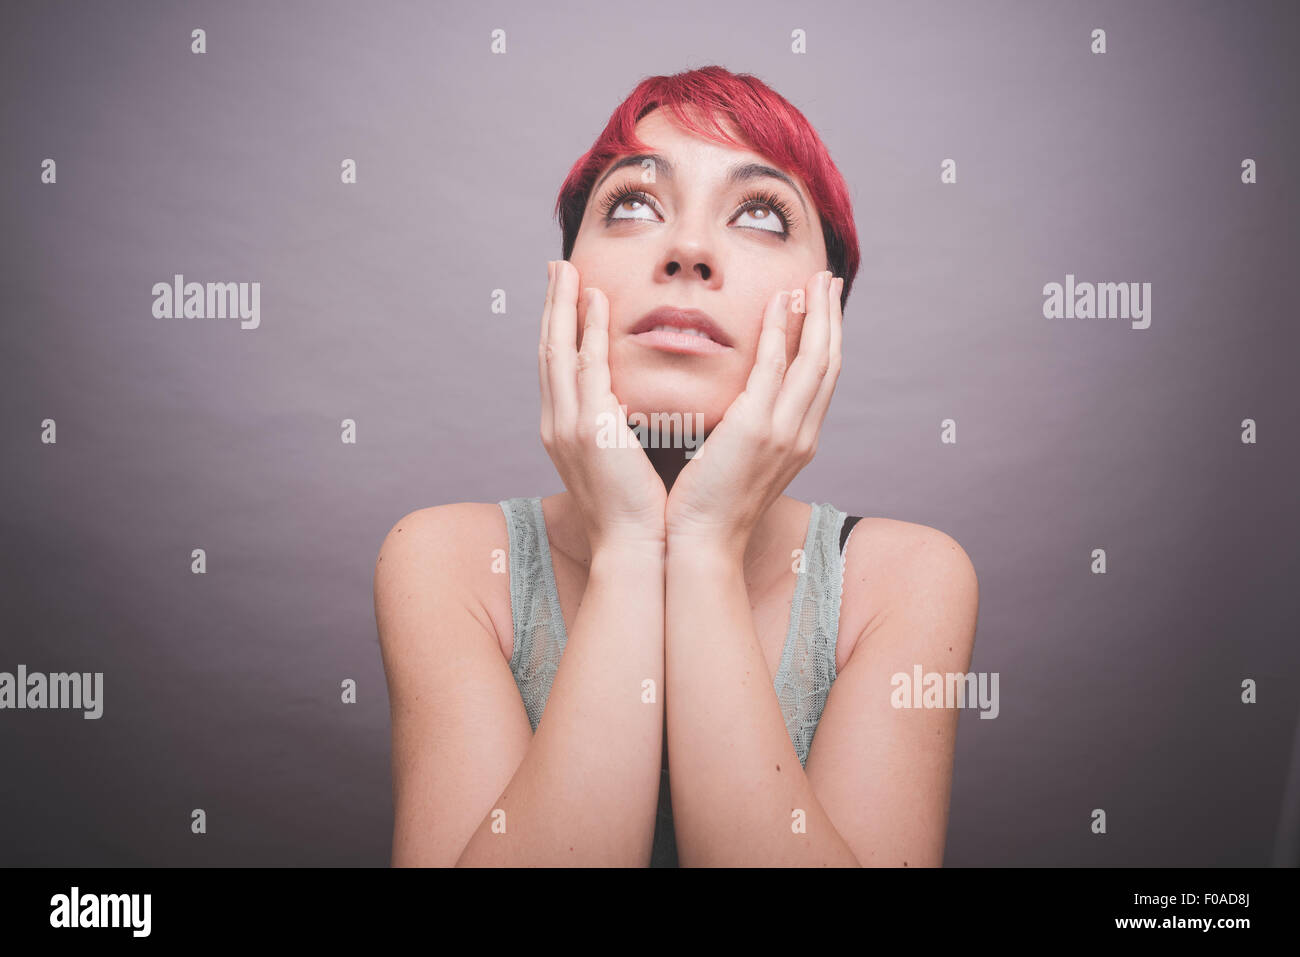 Studio portrait of young woman with short pink hair with hands on cheeks - Stock Image